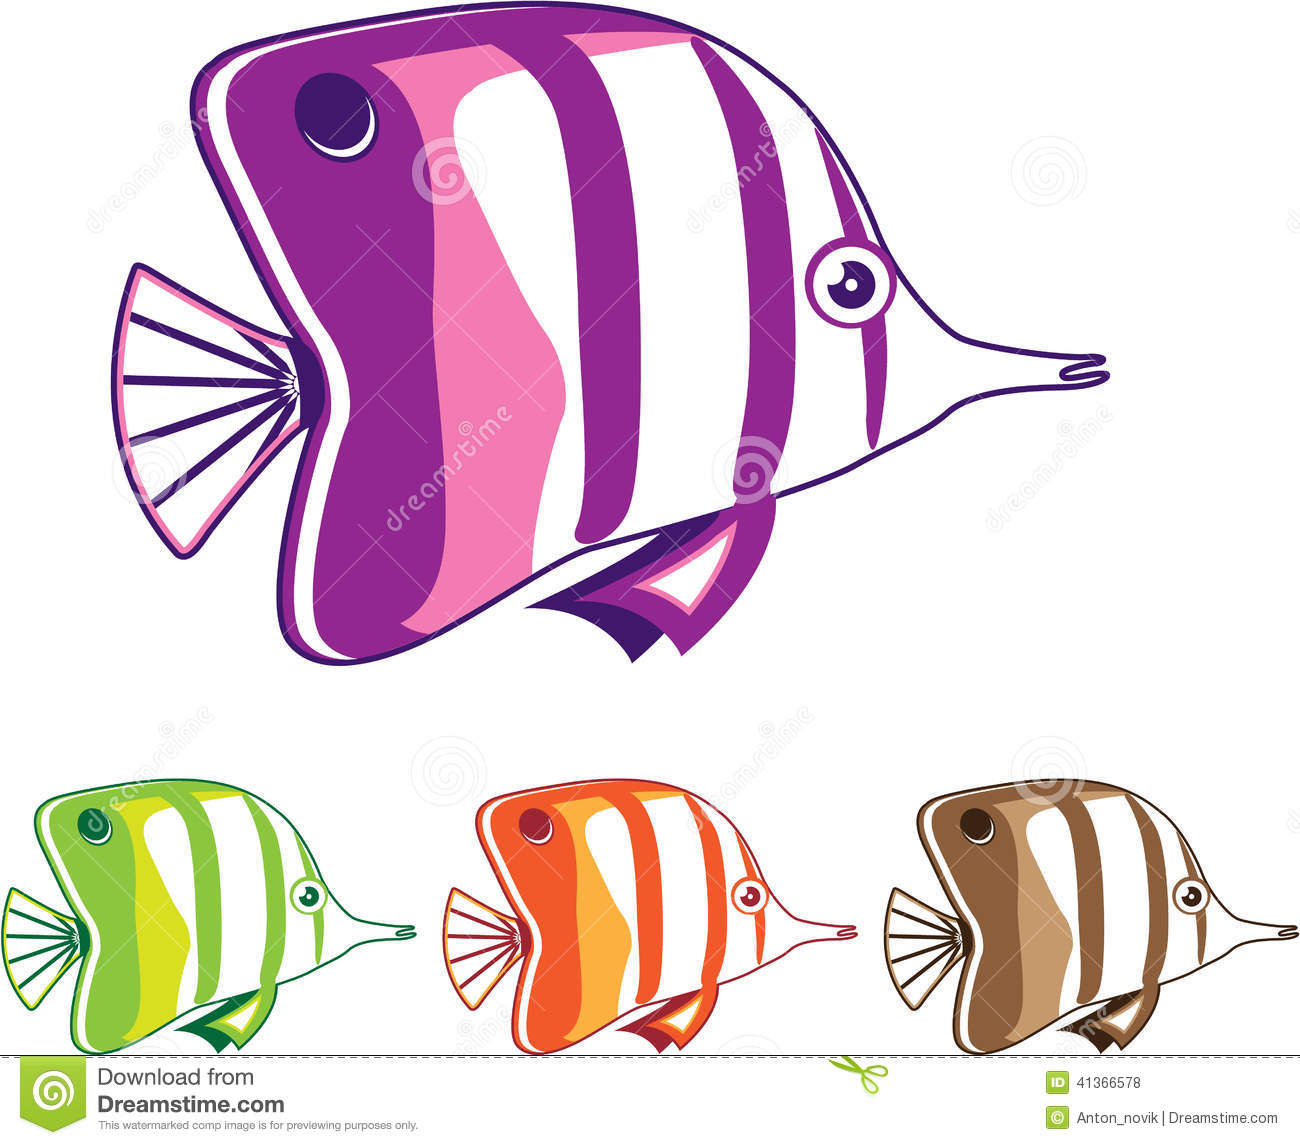 Butterflyfish clipart #10, Download drawings